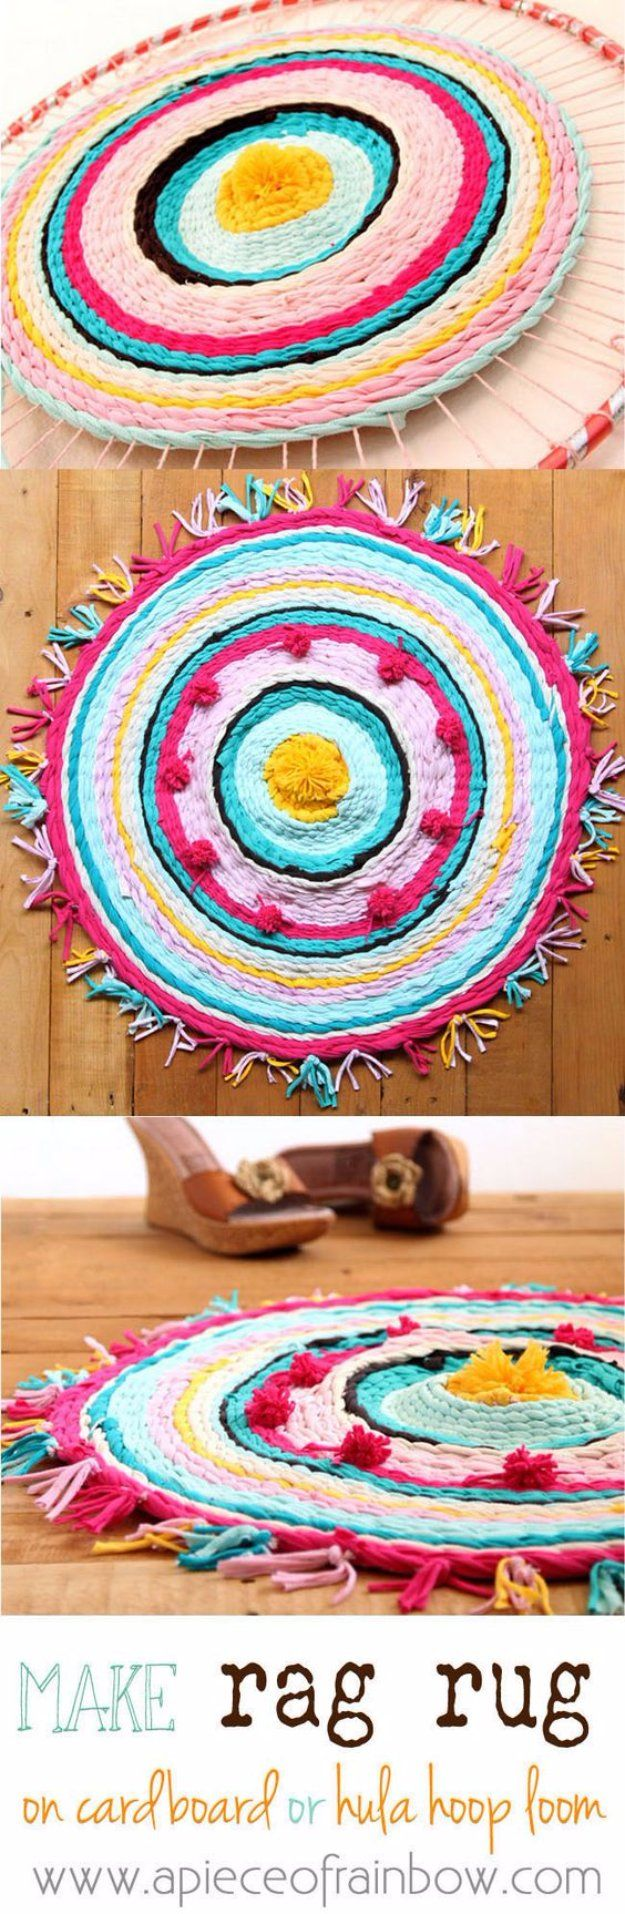 DIY Renters Decor Ideas - DIY Rag Rug From Old T-Shirts - Cool DIY Projects for Those Renting Aparments, Condos or Dorm Rooms - Easy Temporary Wall Art, Contact Paper, Washi Tape and Shelves to Make at Home http://diyjoy.com/diy-decor-ideas-for-renters